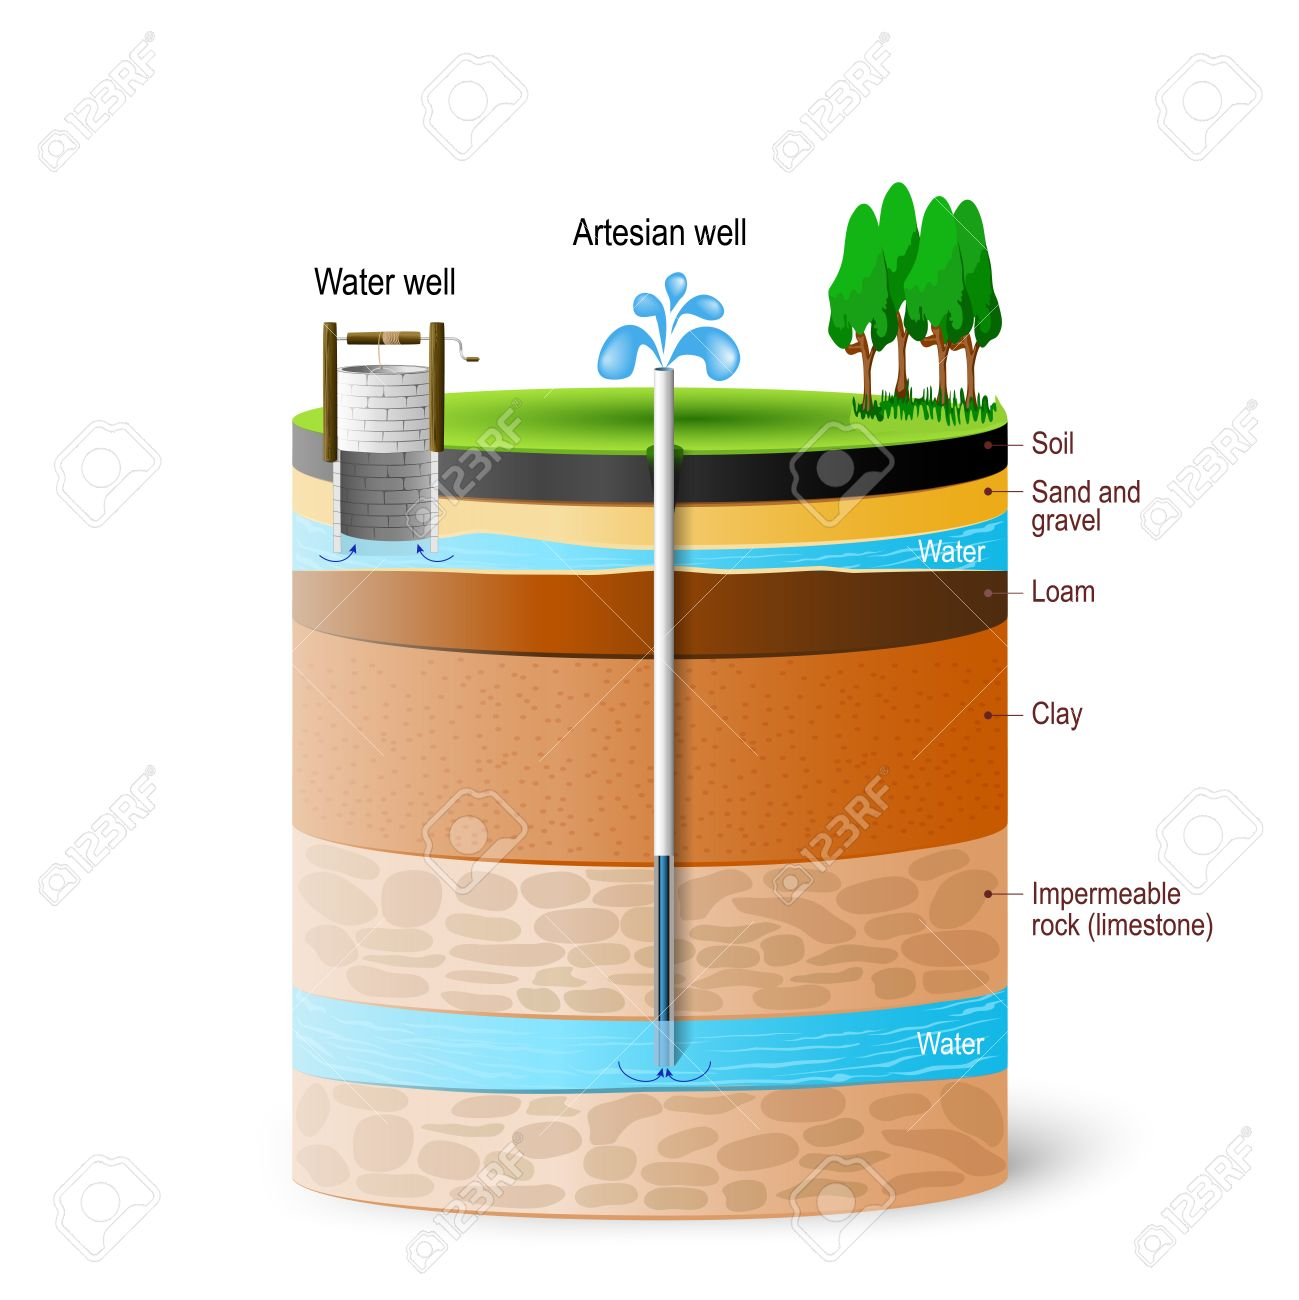 Artesian water and Groundwater. Schematic of an artesian well. Typical aquifer cross-section. Vector diagram - 79443732